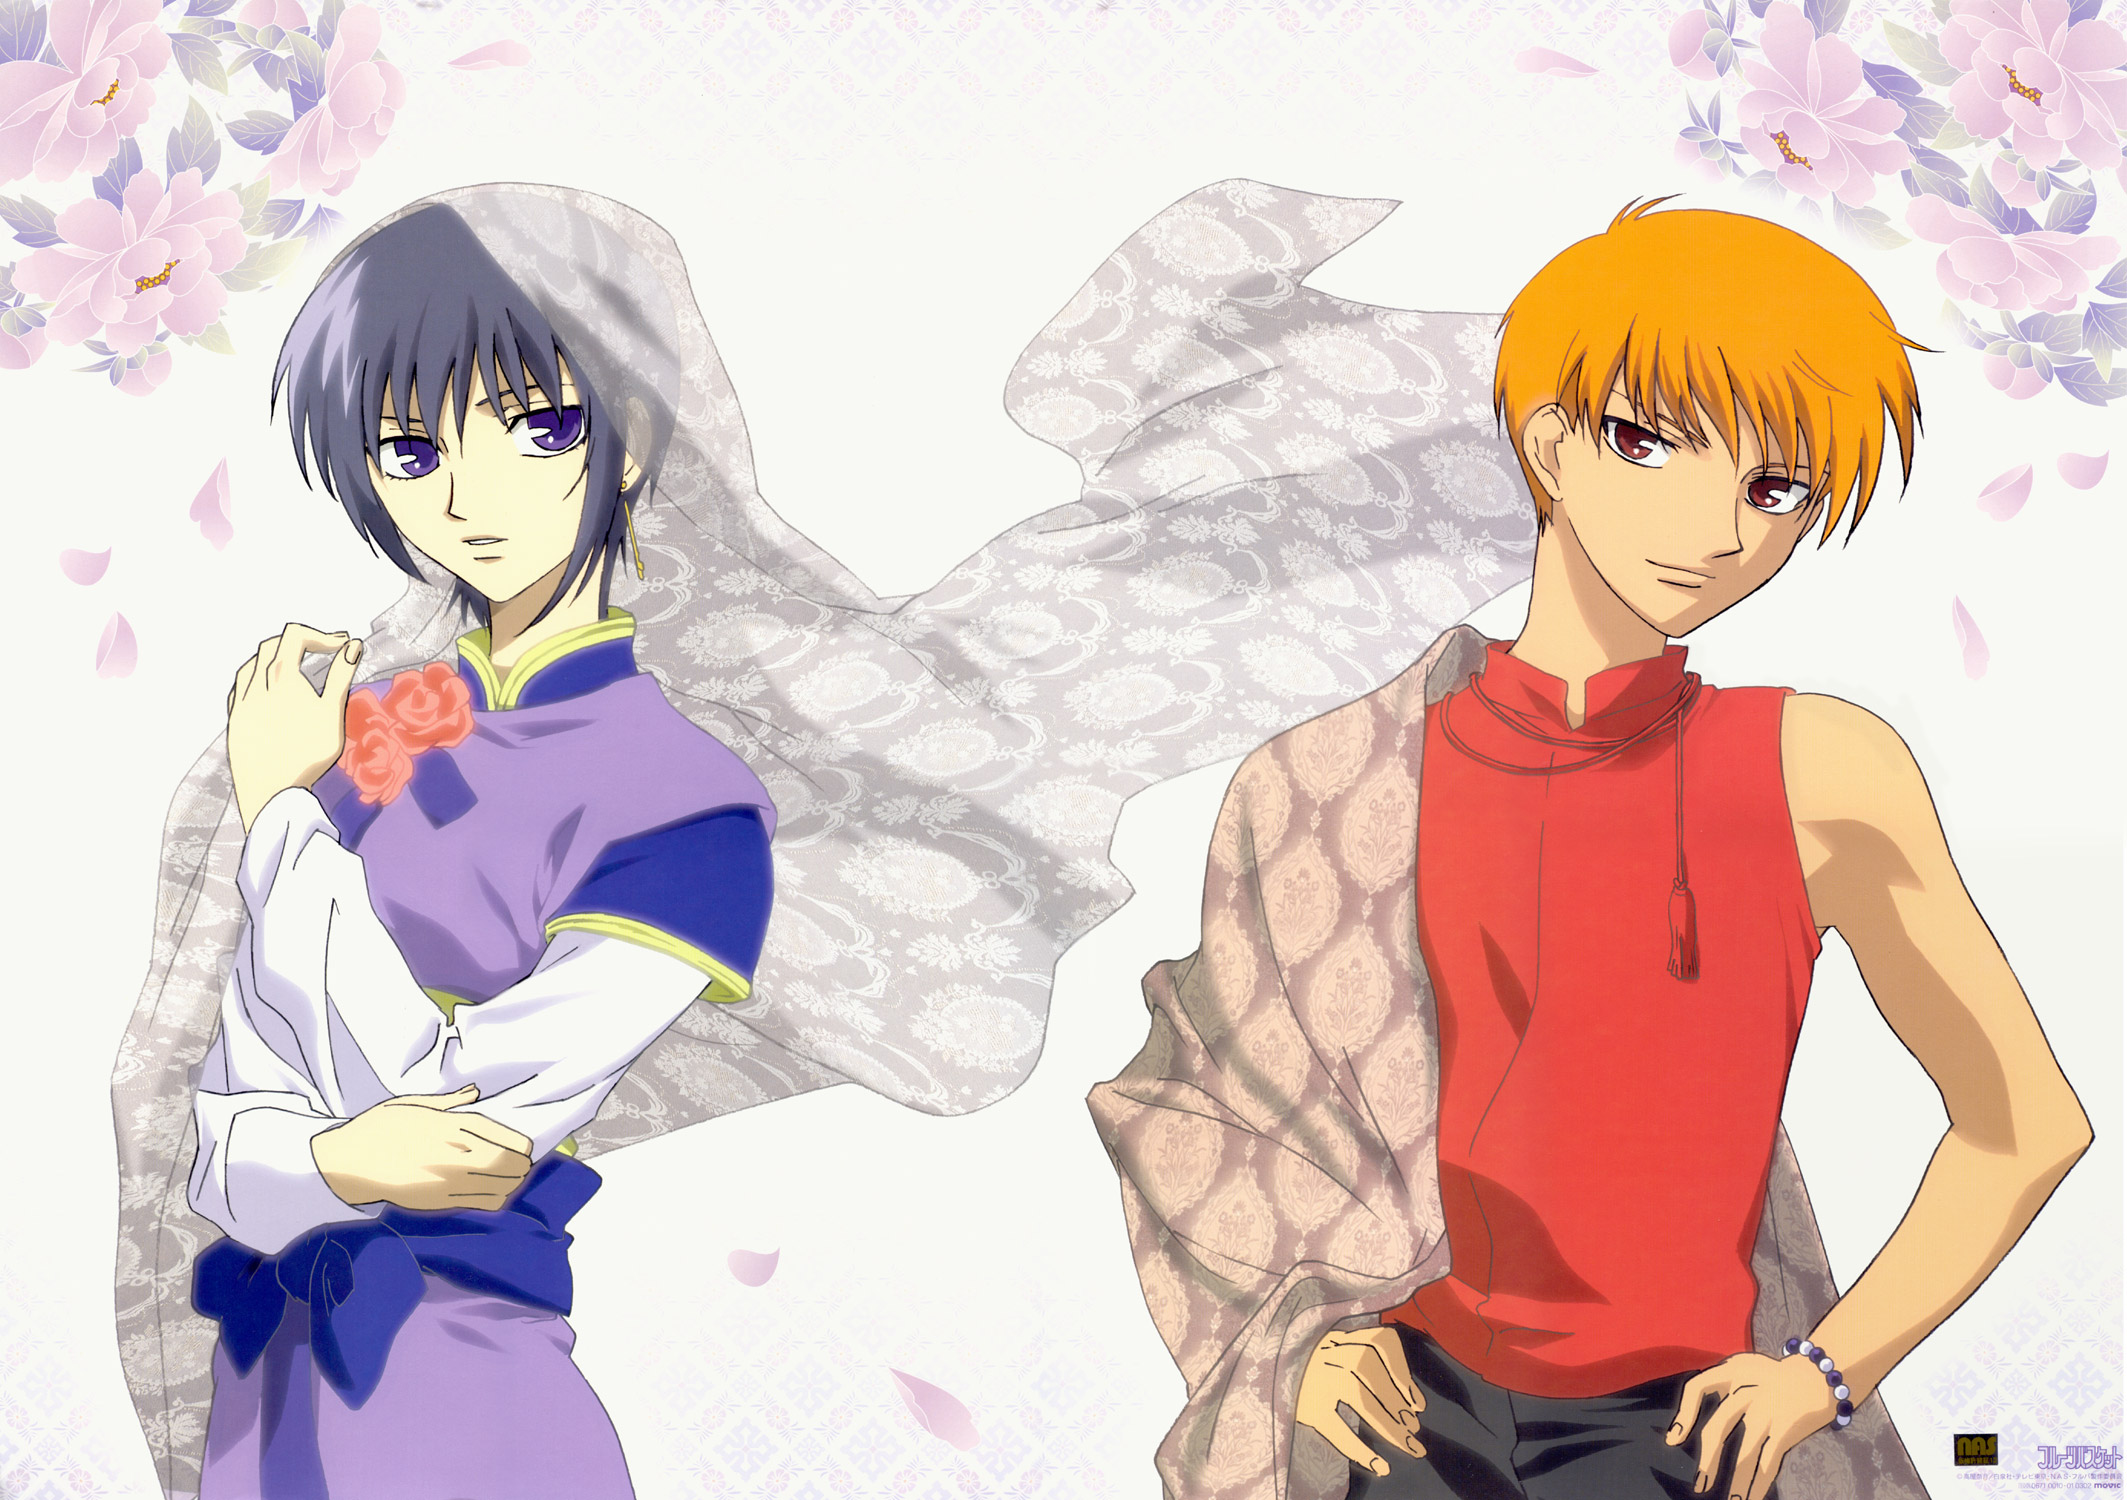 Fruits Basket Kyo And Yuki Fighting Poor Image: Sensitive ...